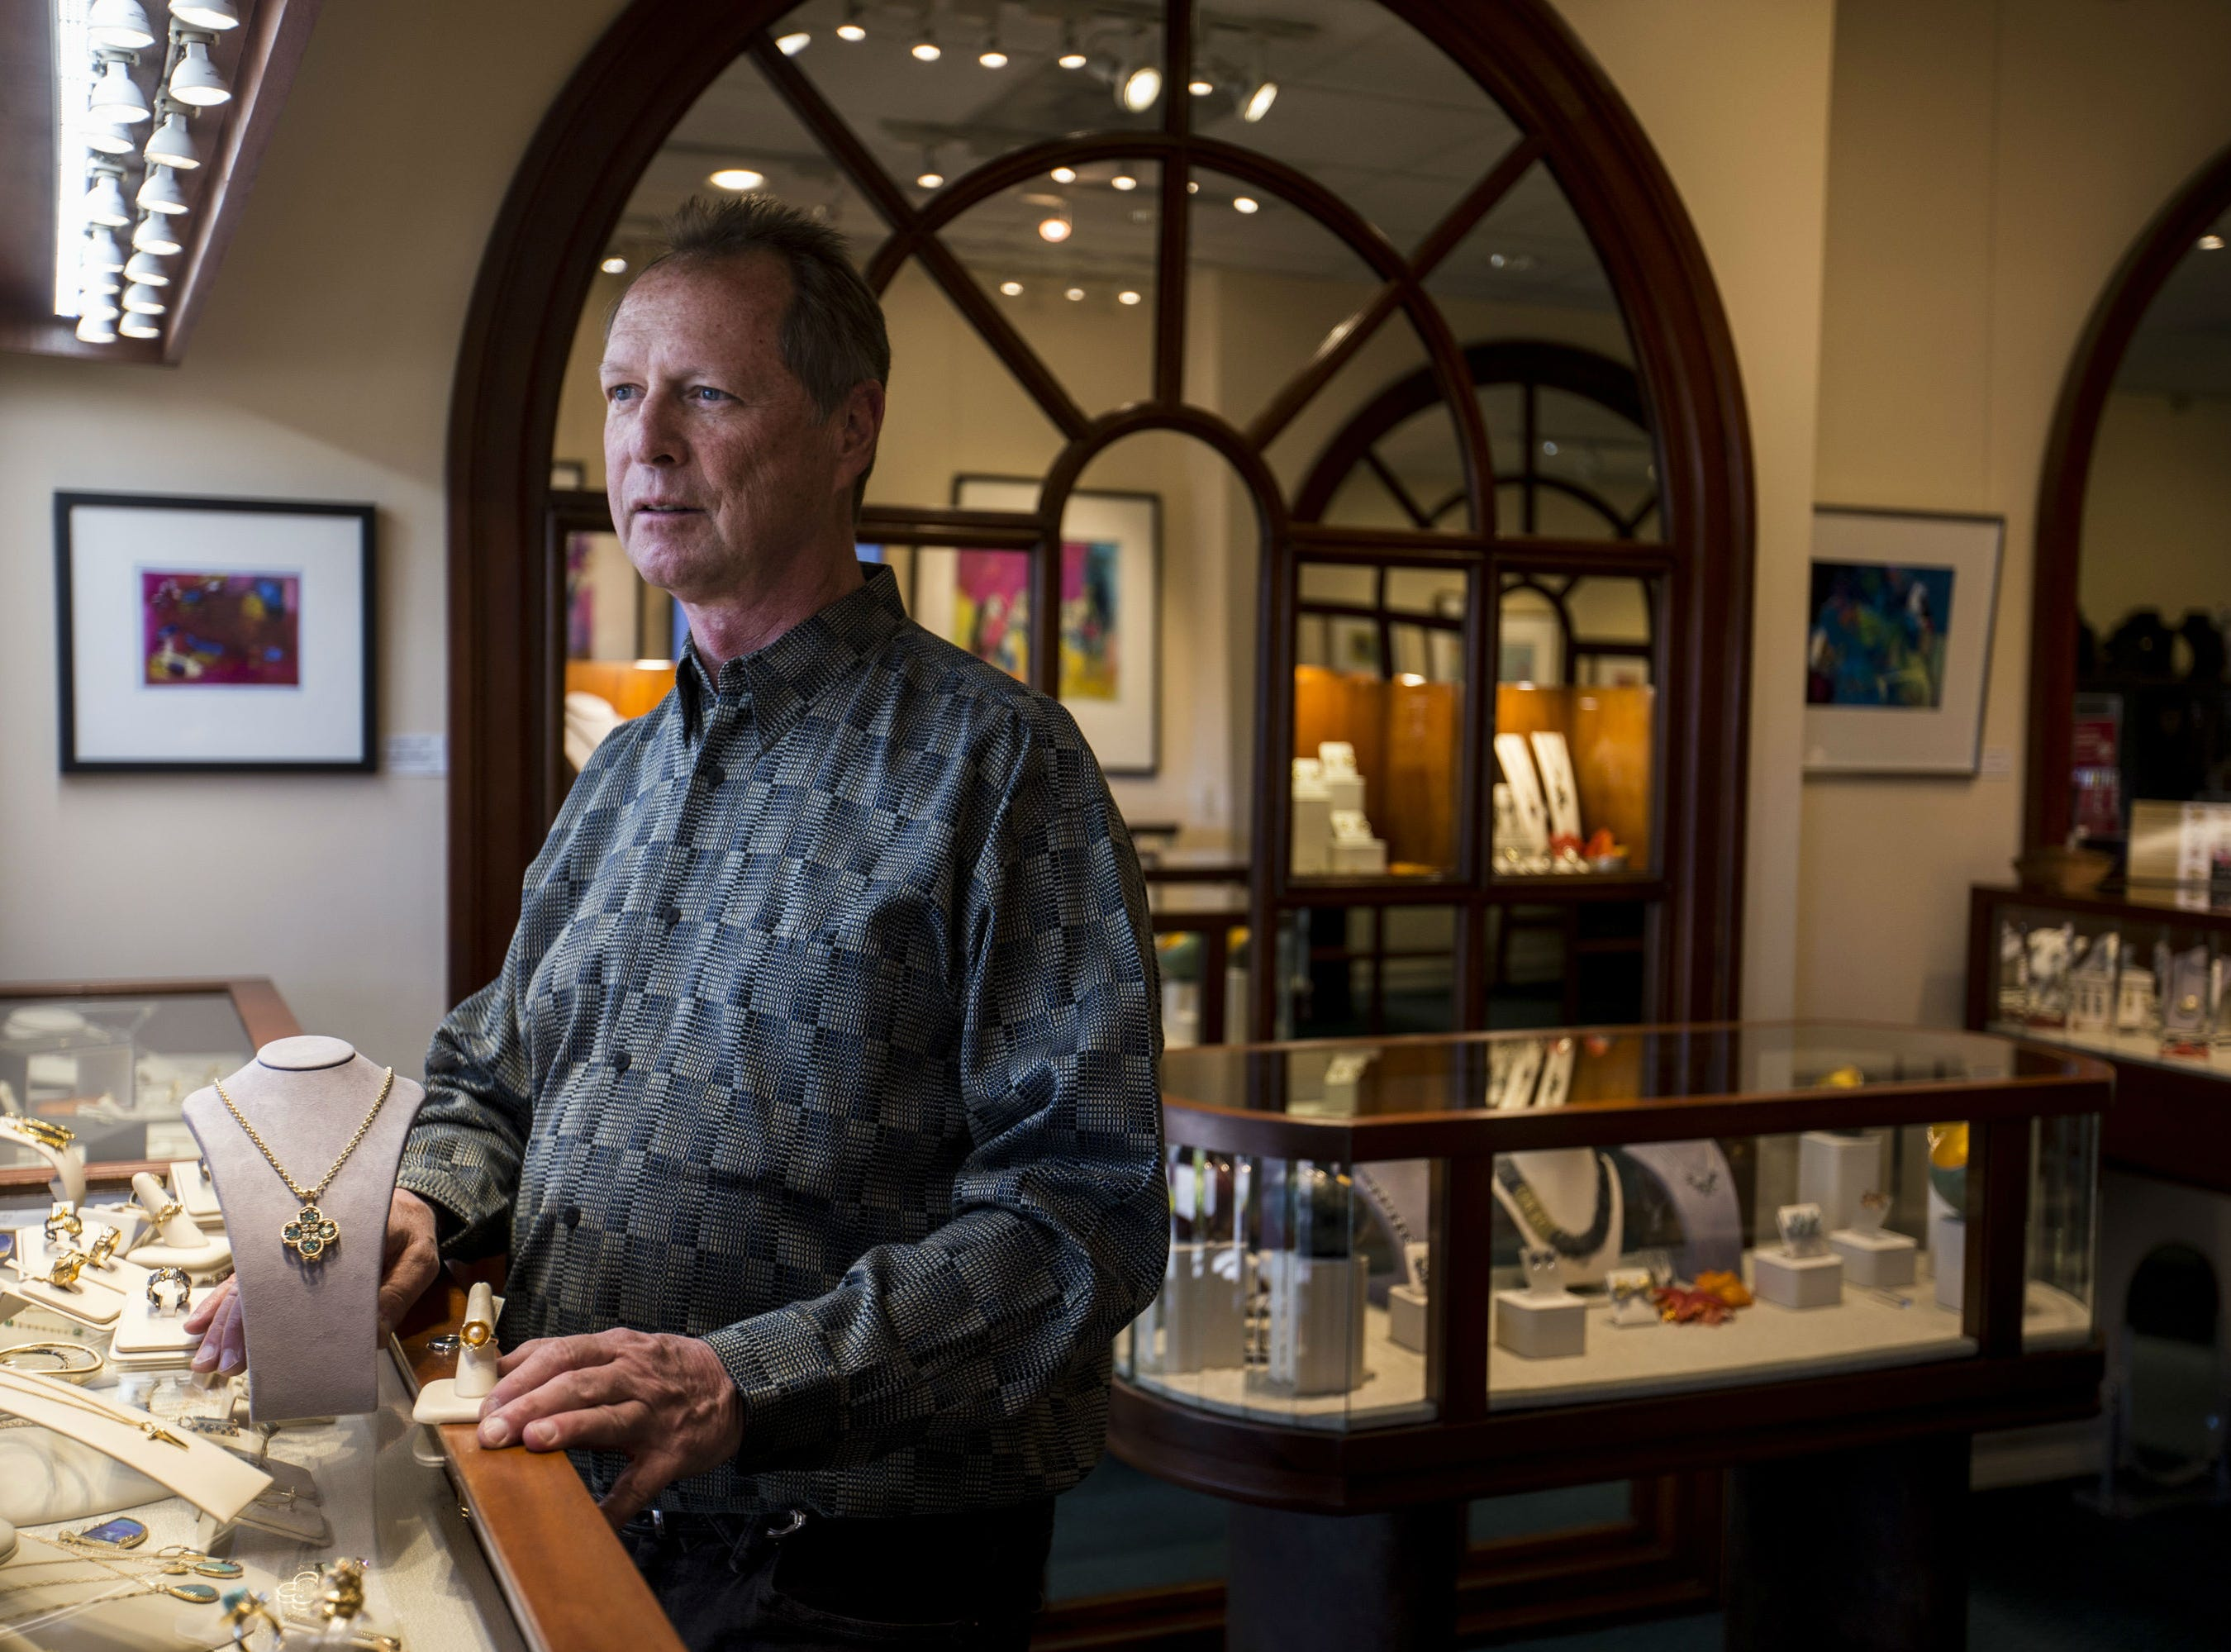 French Thompson poses for a portrait on Nov. 19, 2018, at French Designer Jeweler in Scottsdale. His store features custom jewelry and art from artists around the world.